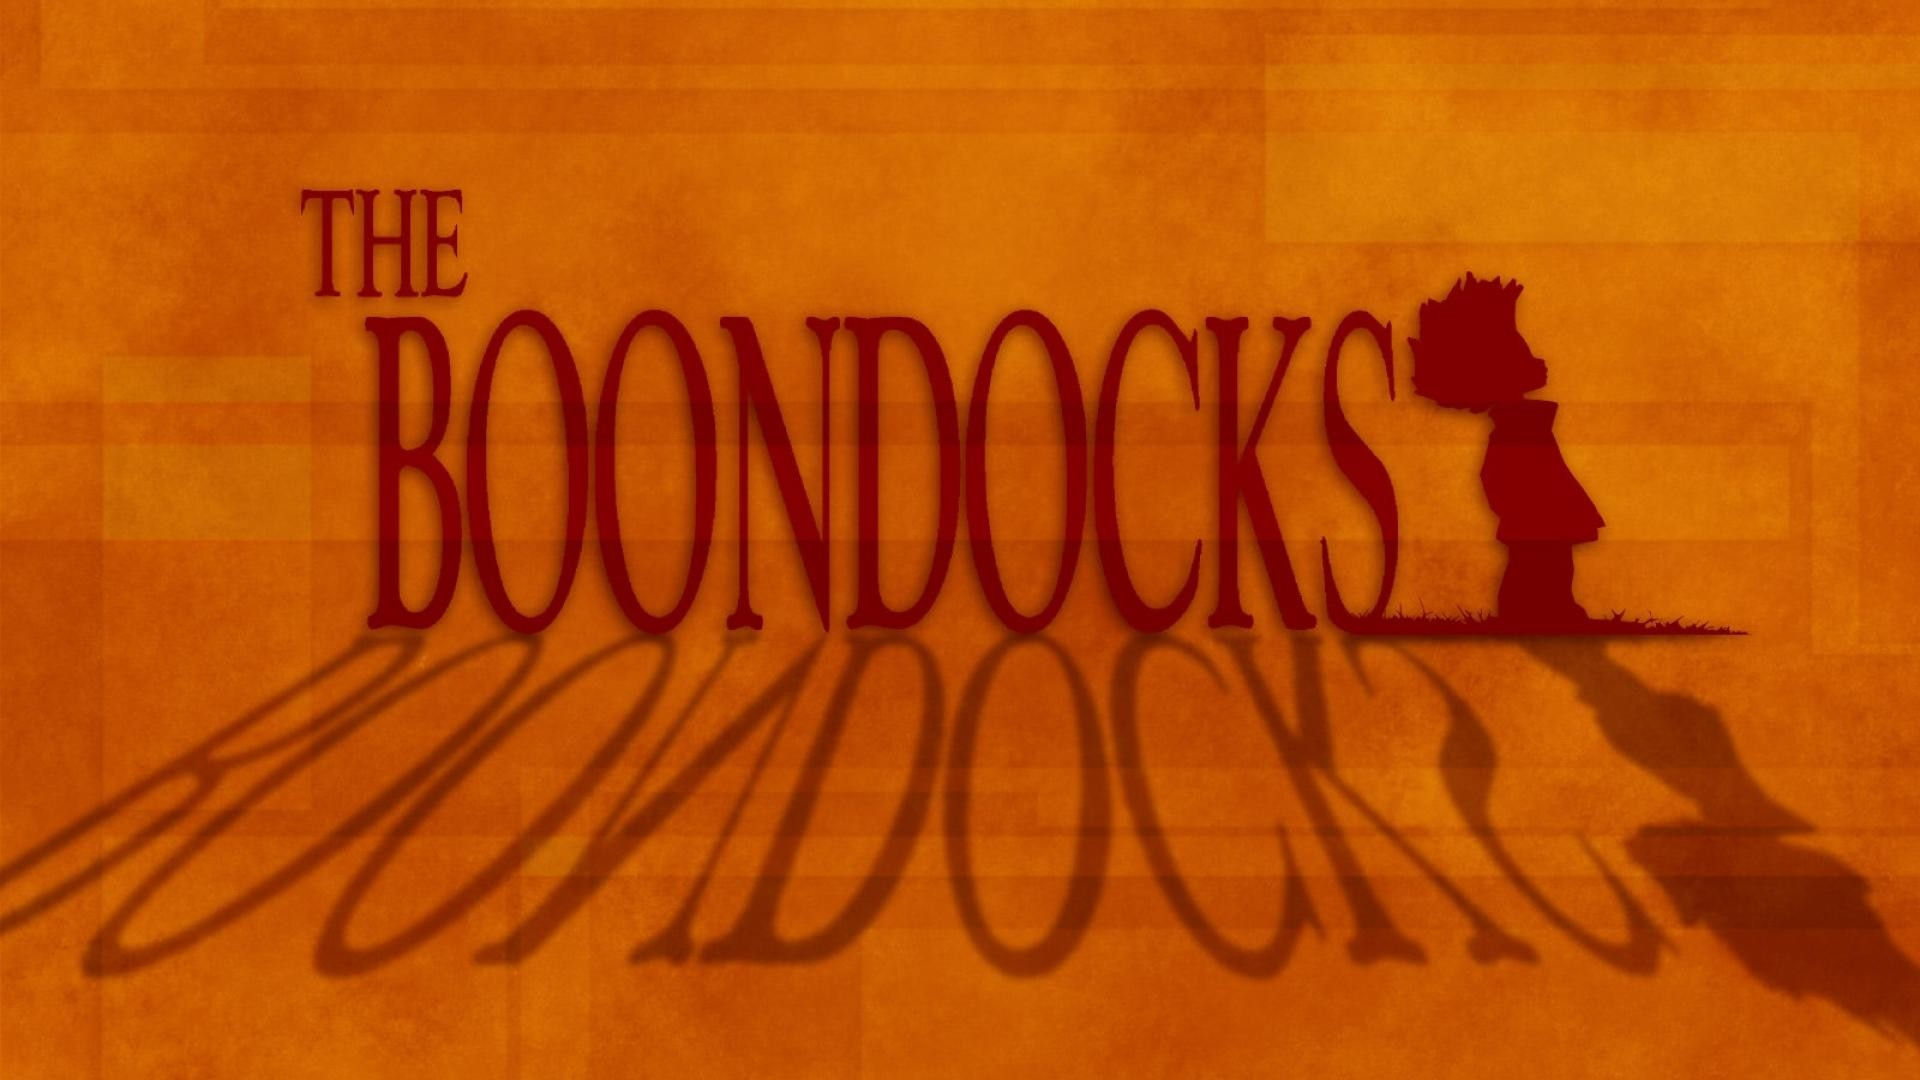 the boondocks american animated series poster hd wallpaper . …